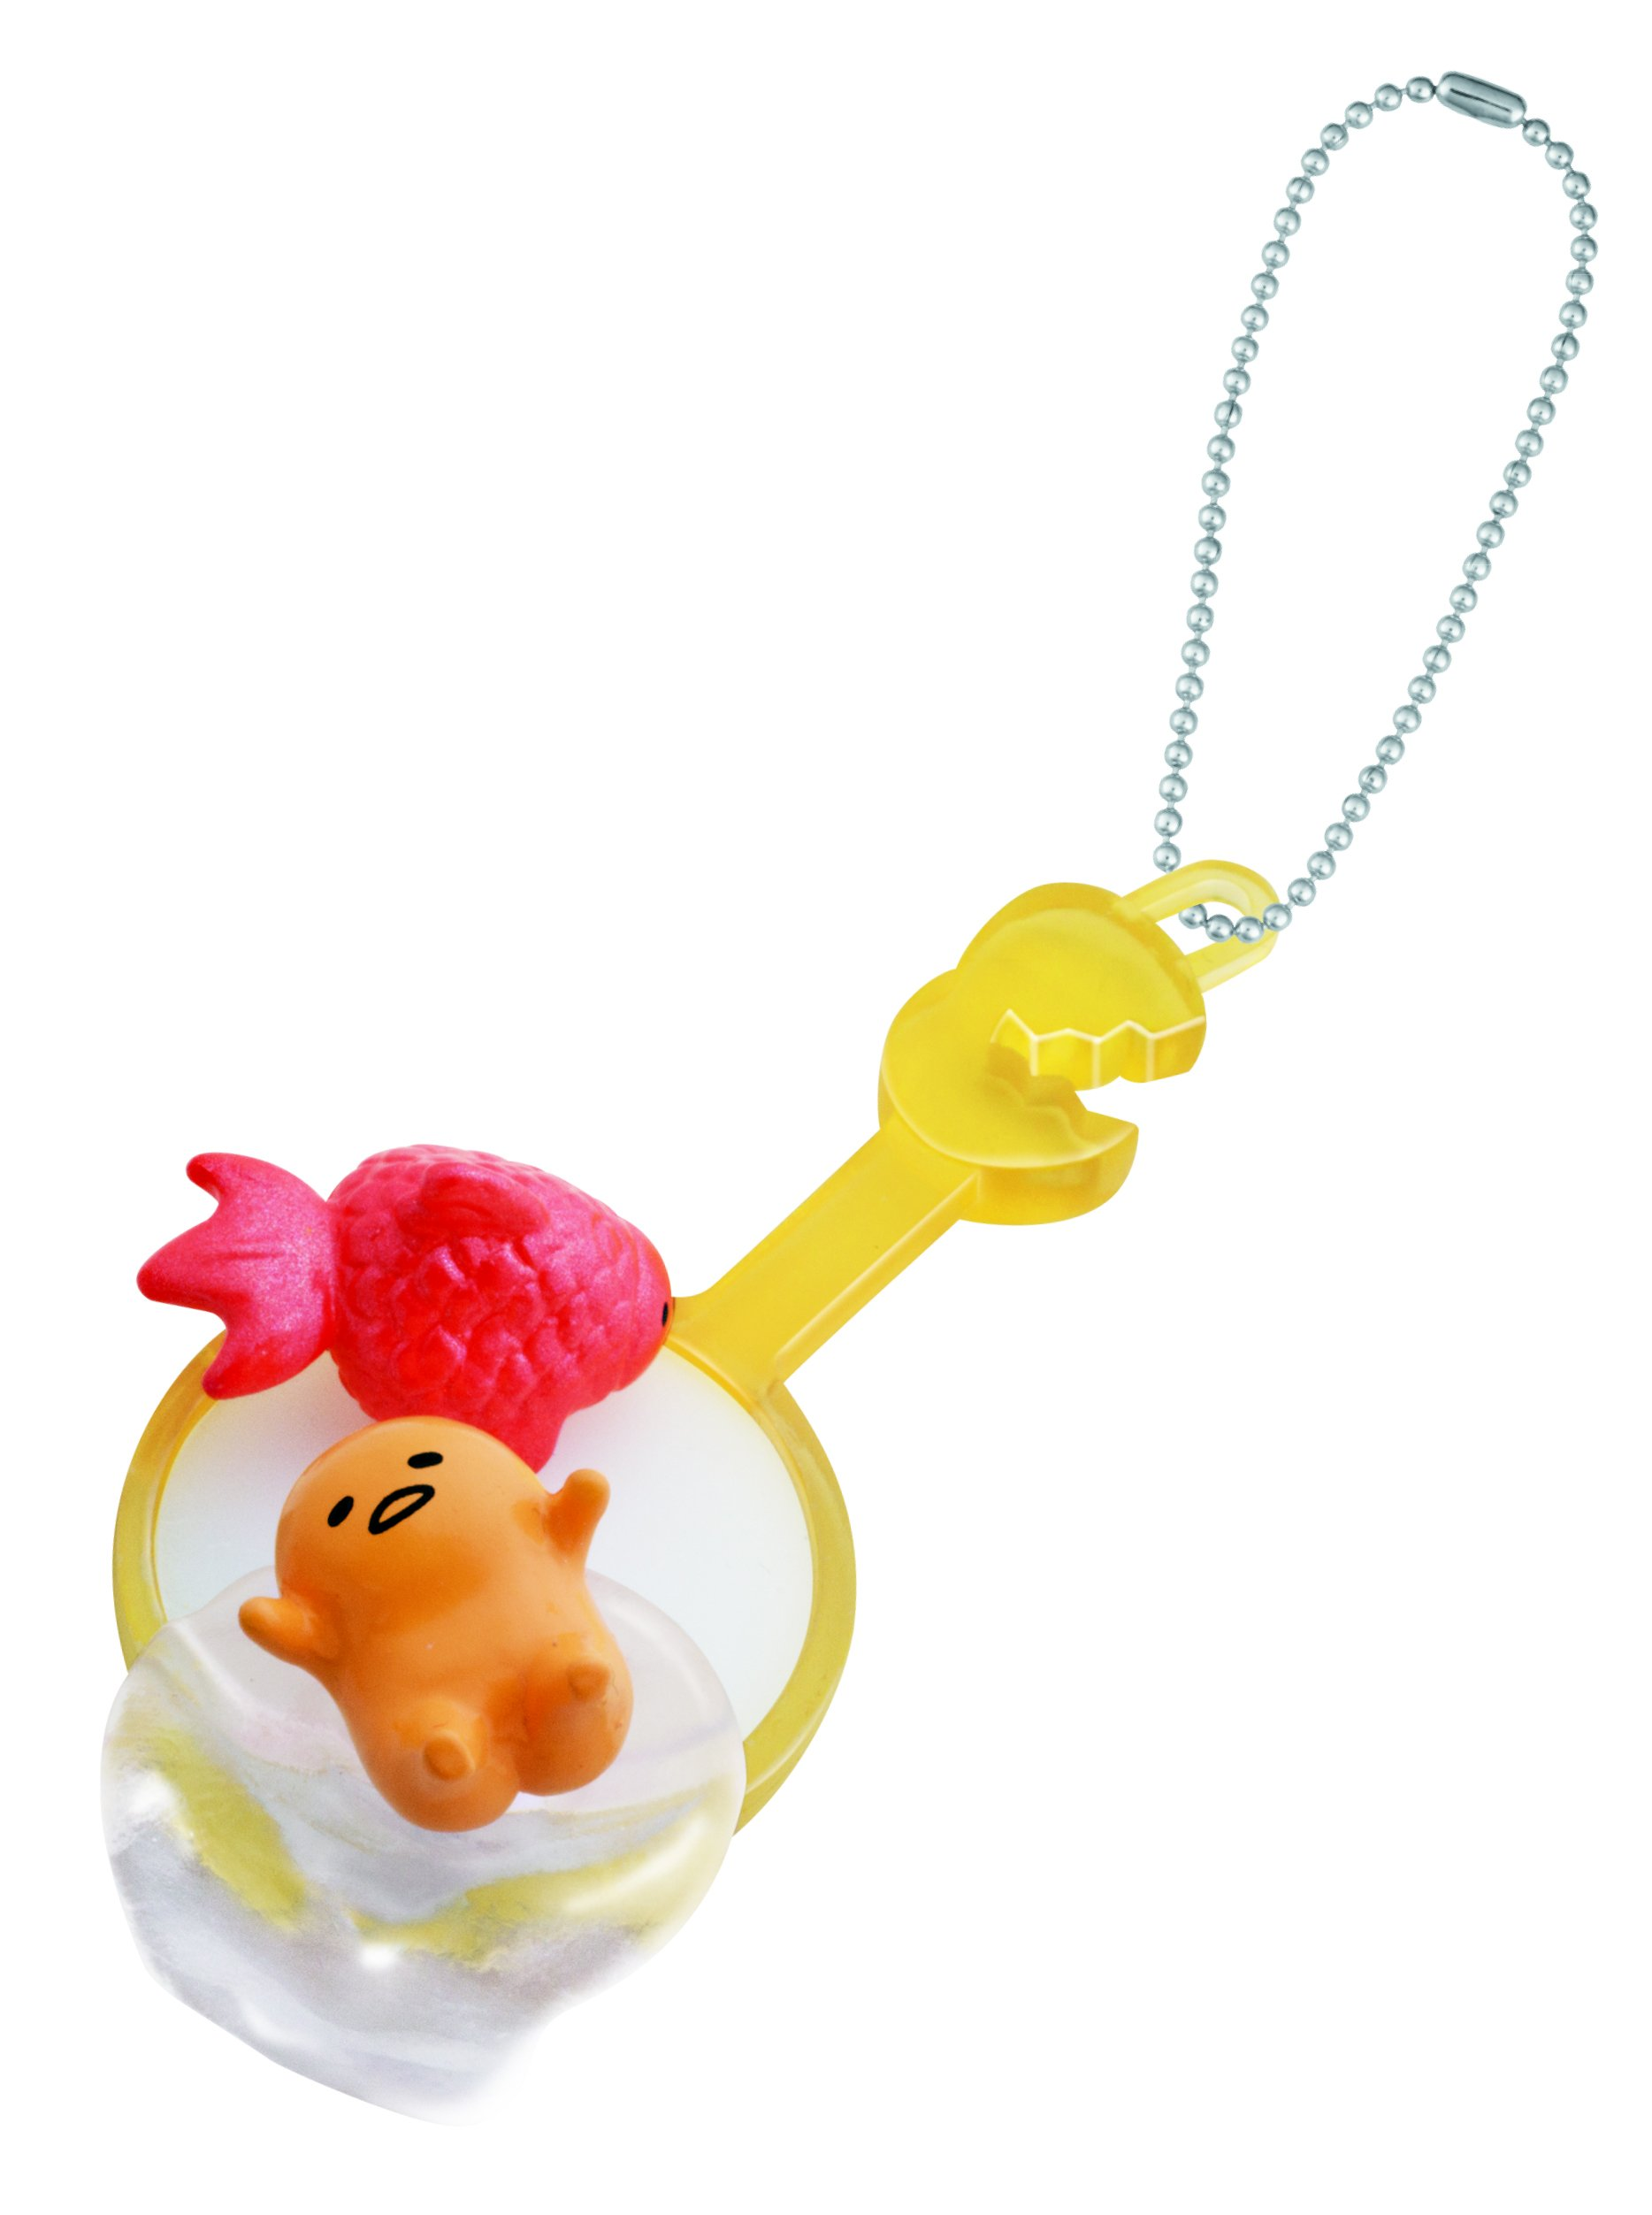 Full set Box 8 packages miniature figure Gudetama Japanese Festival Mascot by Re-Ment from Japan by Re-Ment (Image #6)